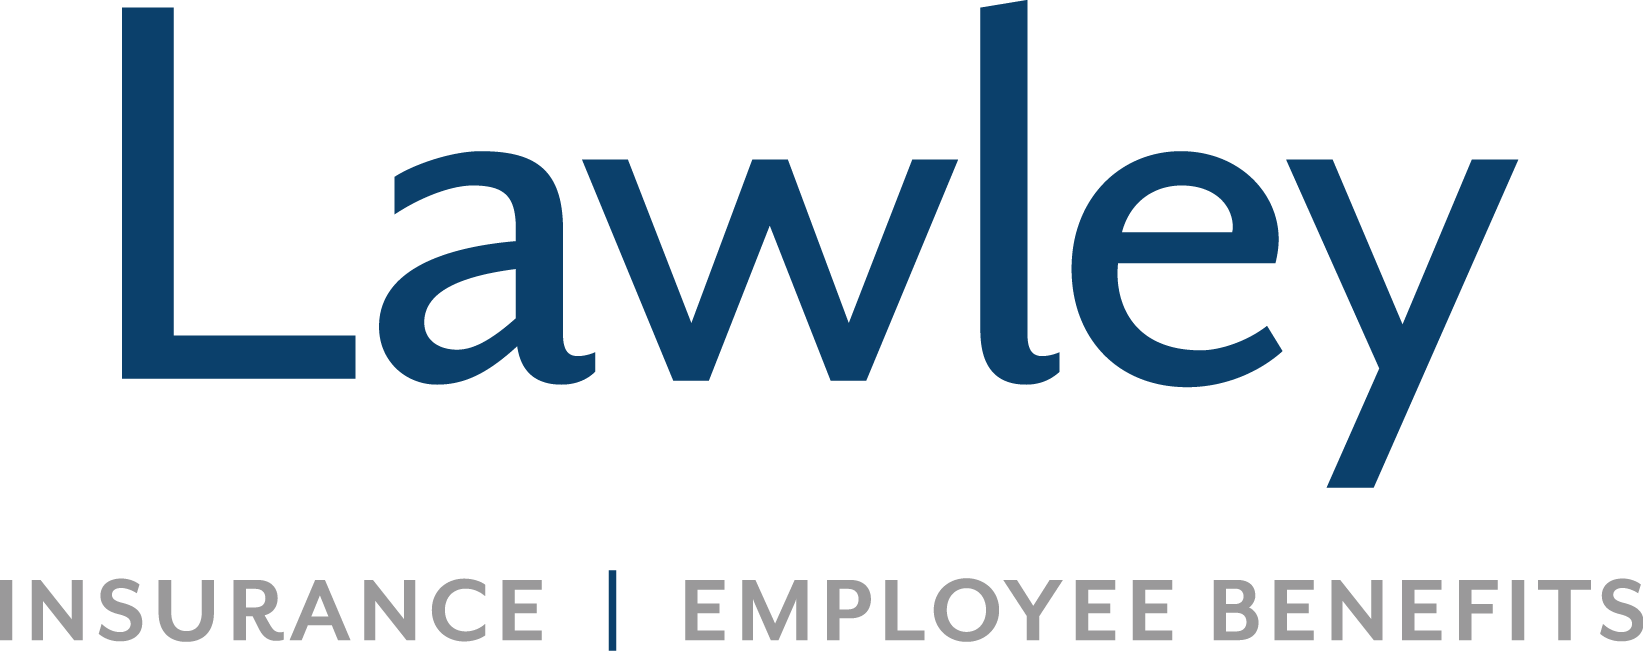 Sponsor of the Month: Lawley Insurance/Employee Benefits